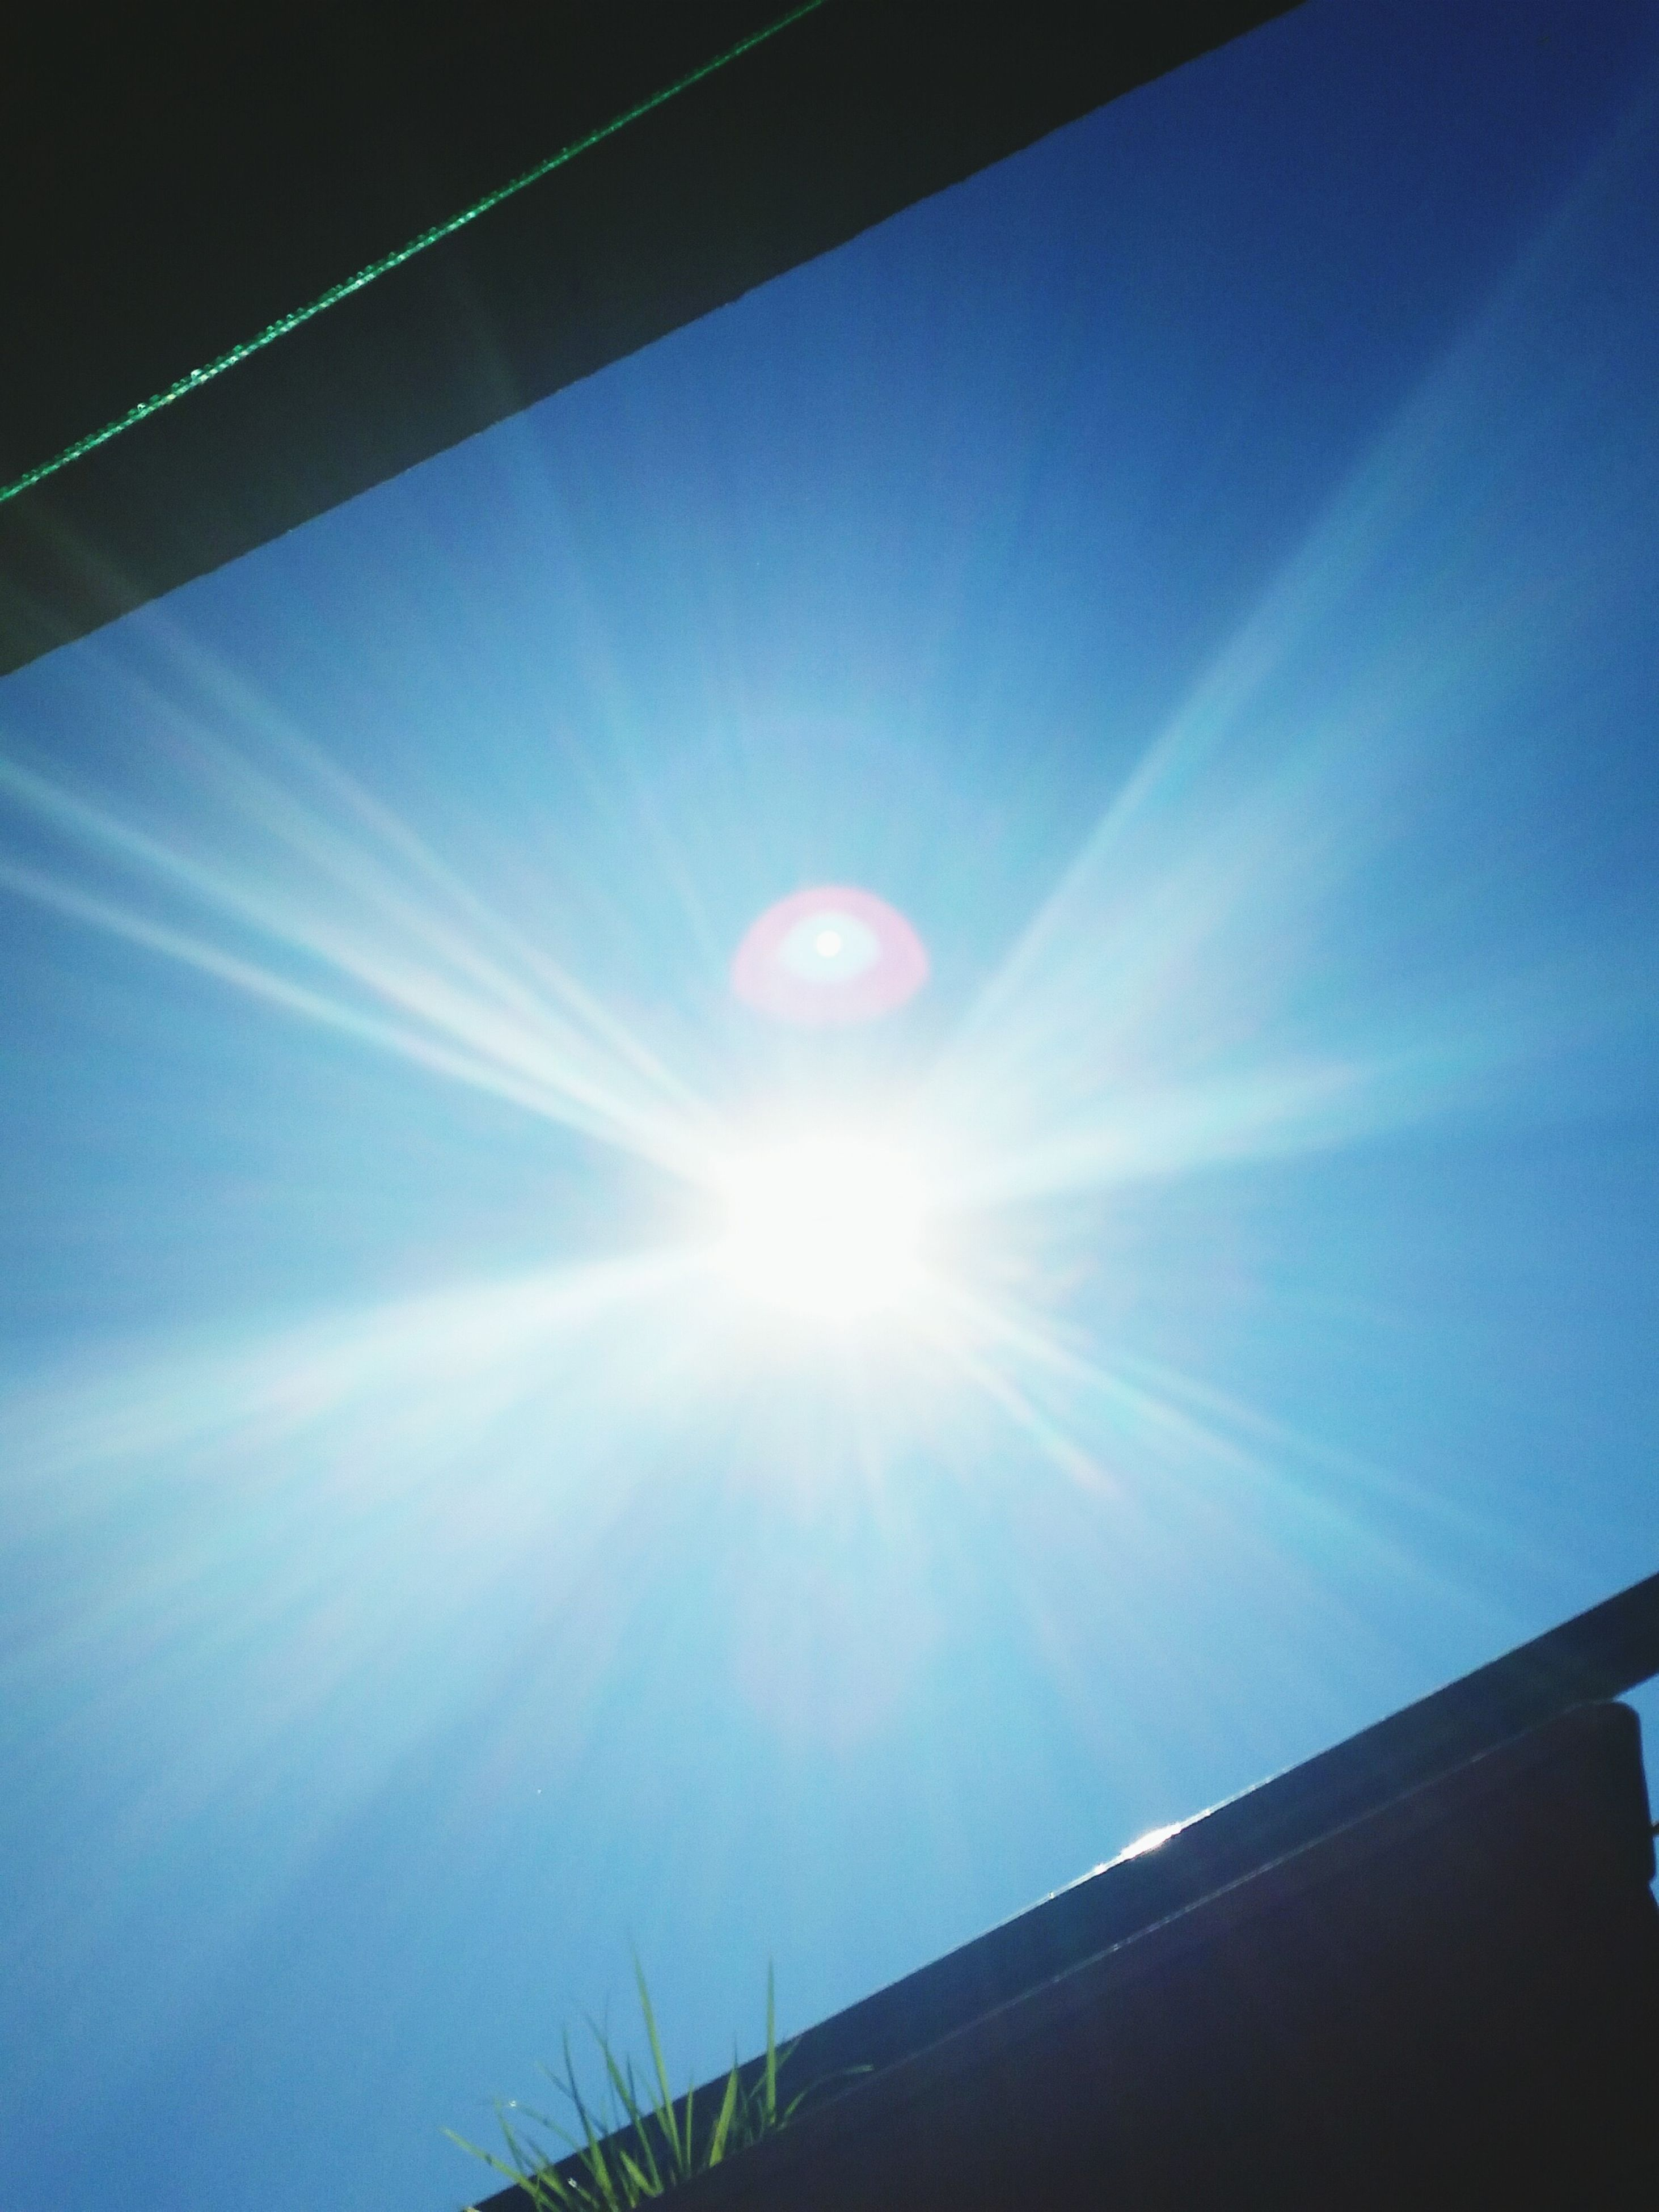 sun, low angle view, sunbeam, lens flare, sunlight, blue, sky, bright, sunny, vapor trail, nature, day, beauty in nature, outdoors, built structure, no people, tranquility, clear sky, architecture, part of